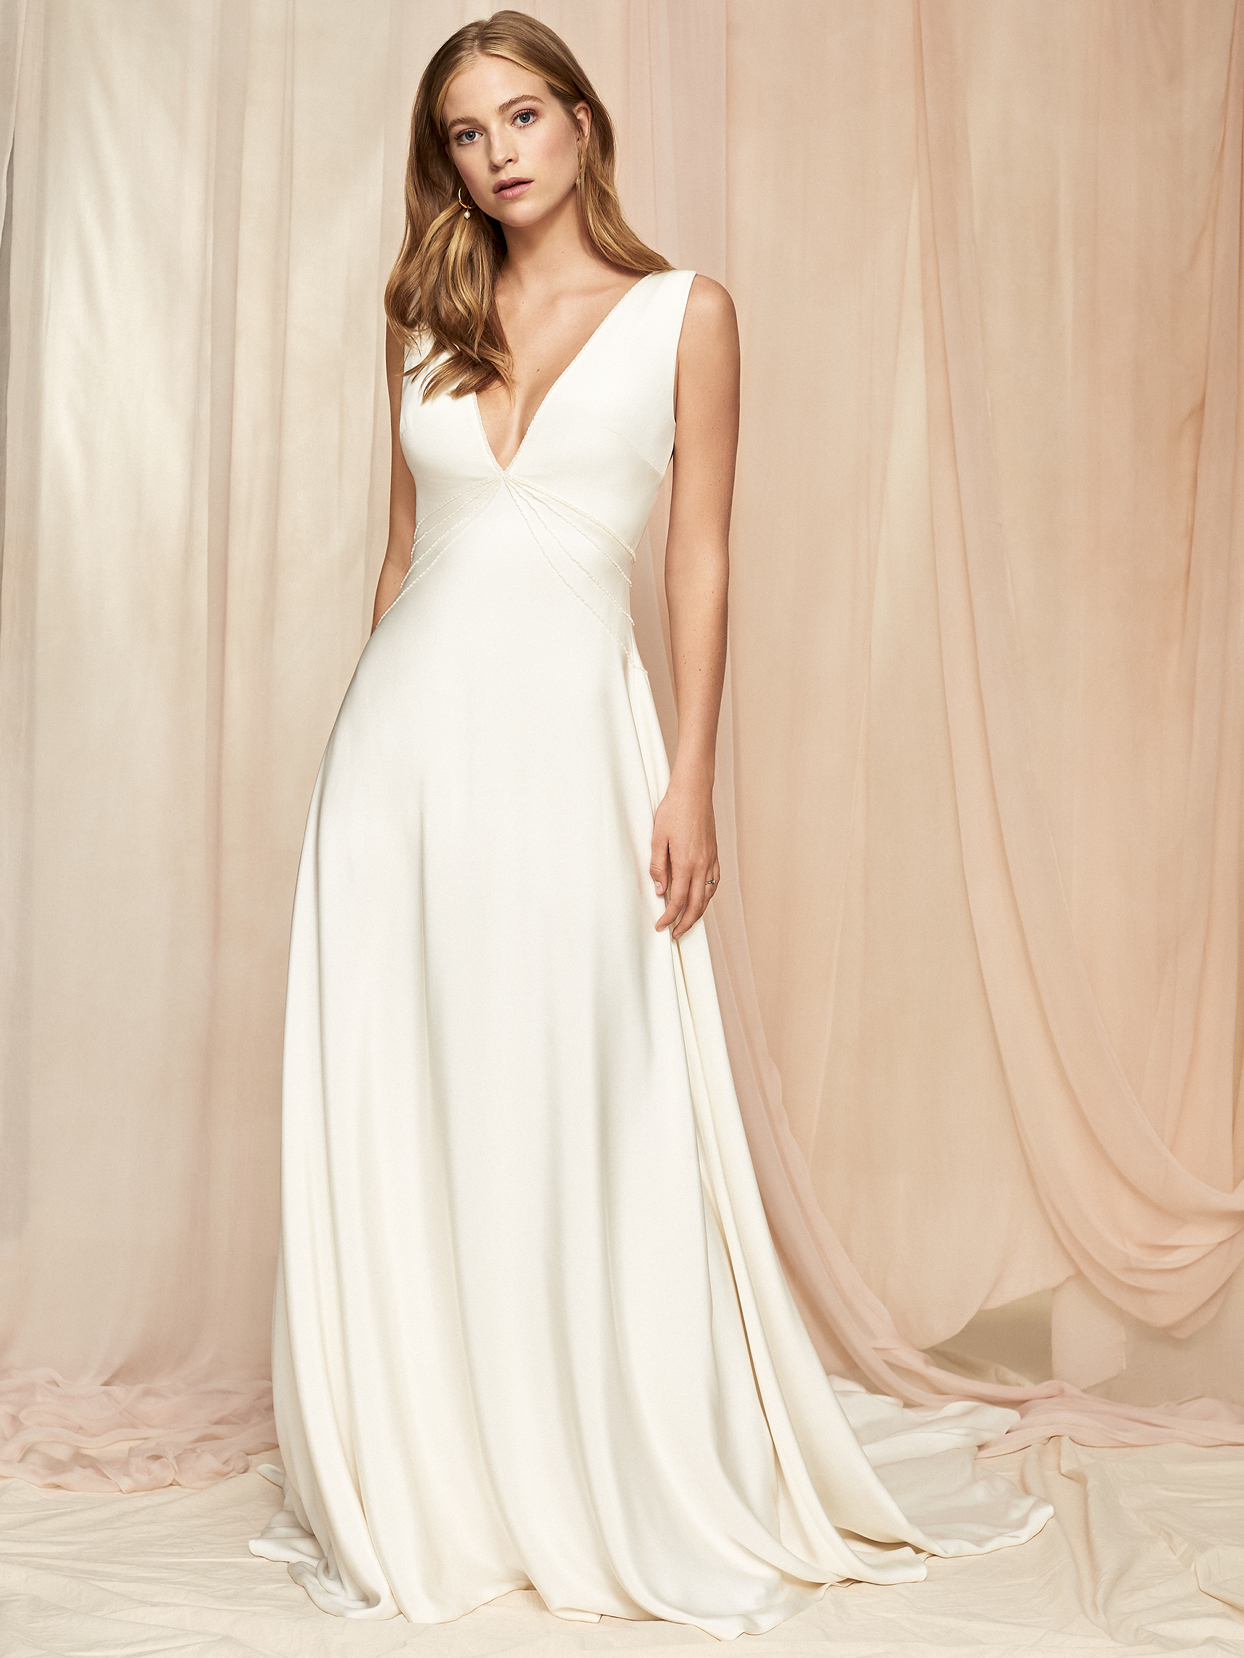 Savannah Miller wide strap sleeveless deep v-neck a-line wedding dress fall 2020